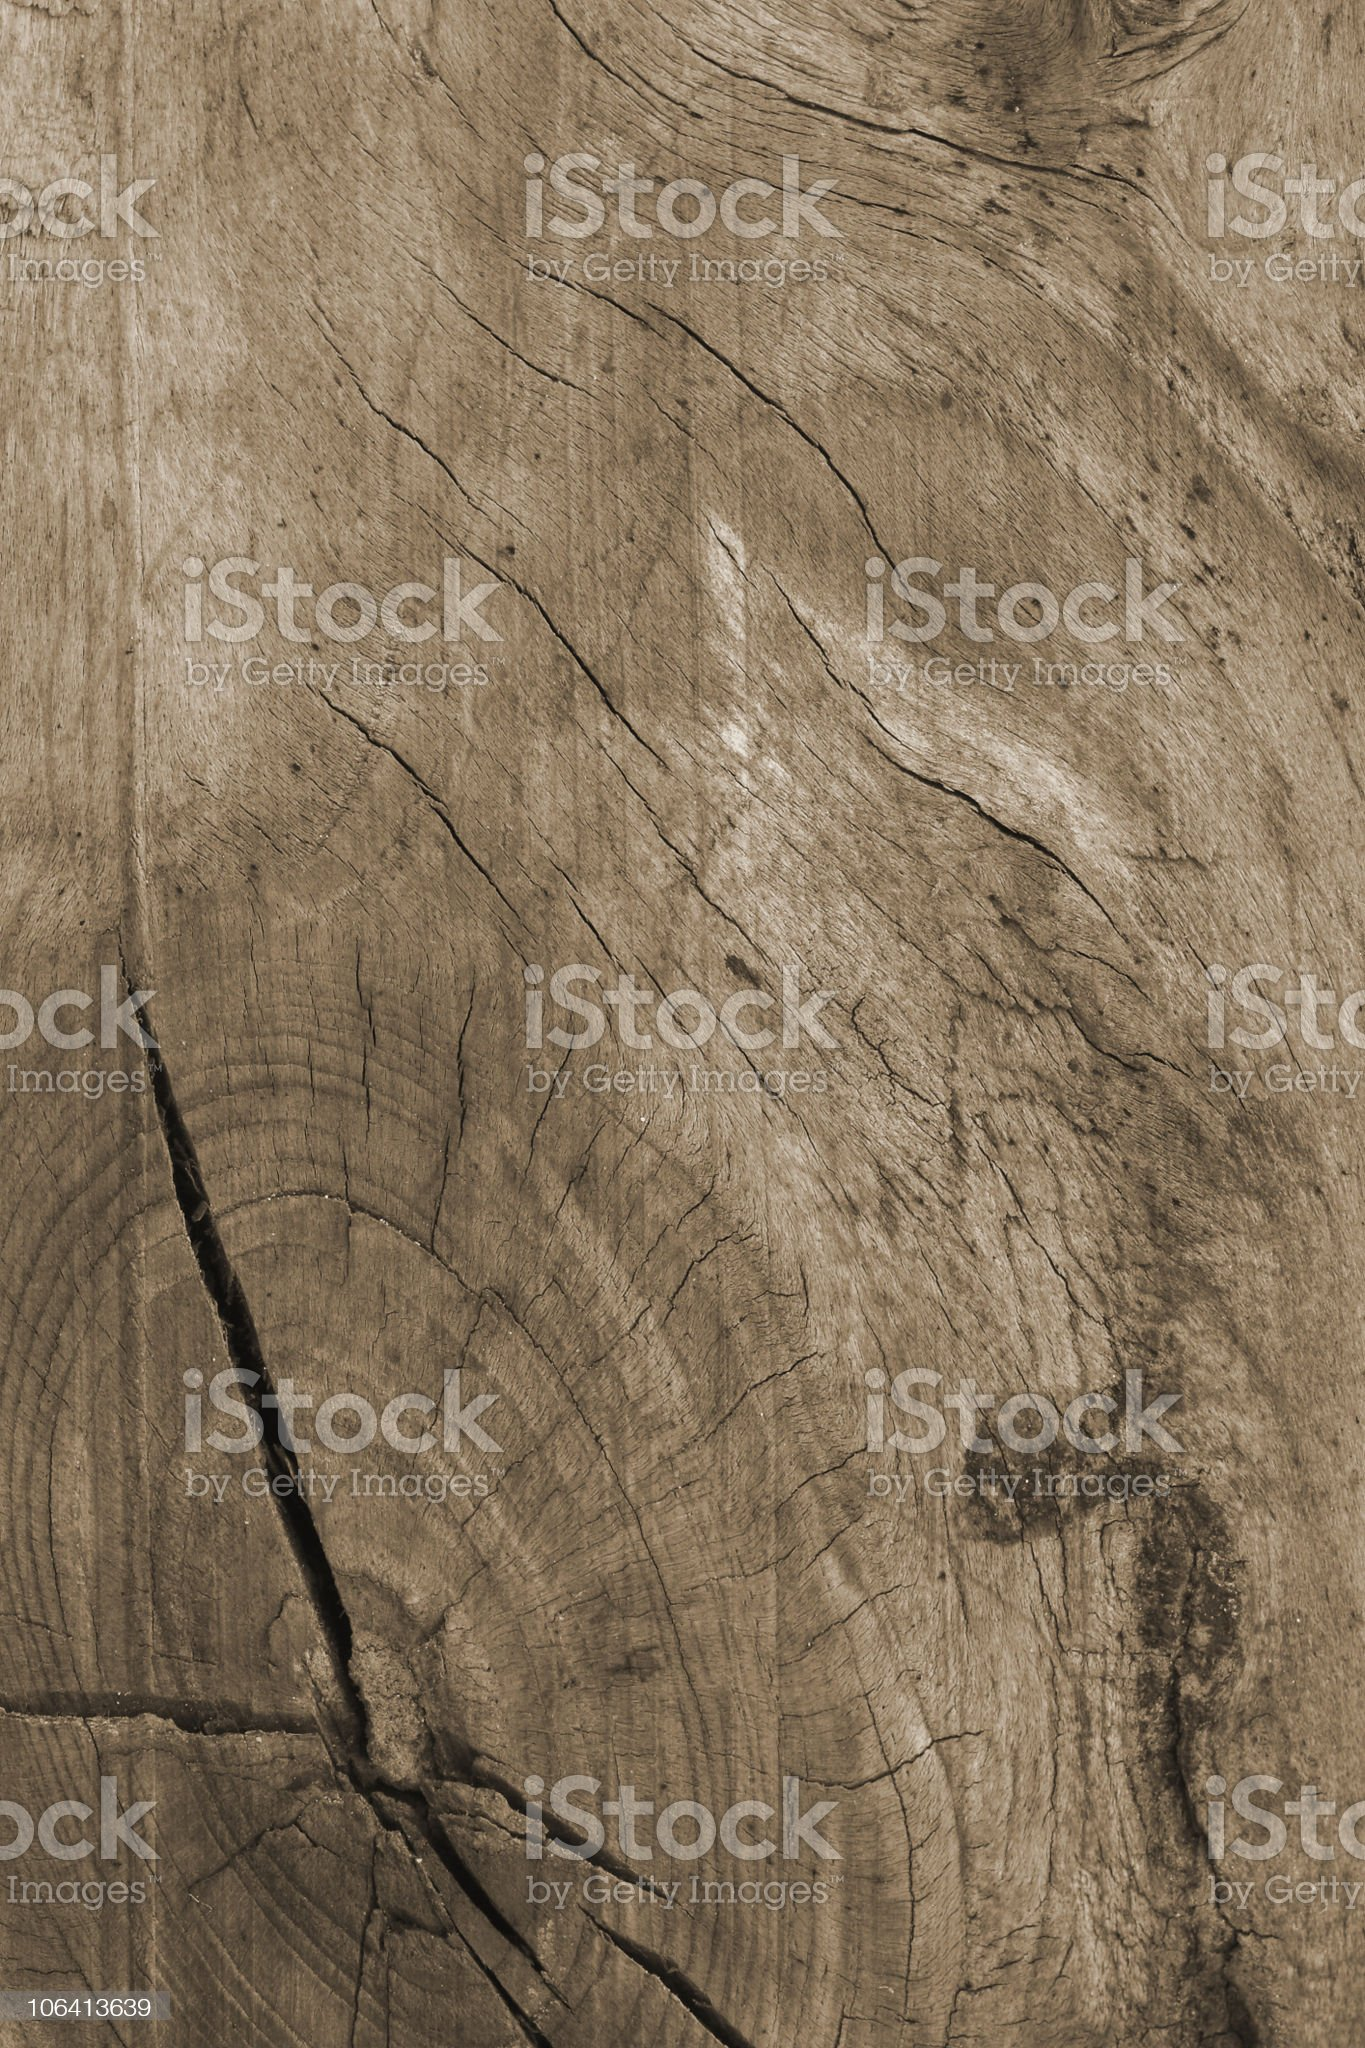 texture of old boards with knots royalty-free stock photo